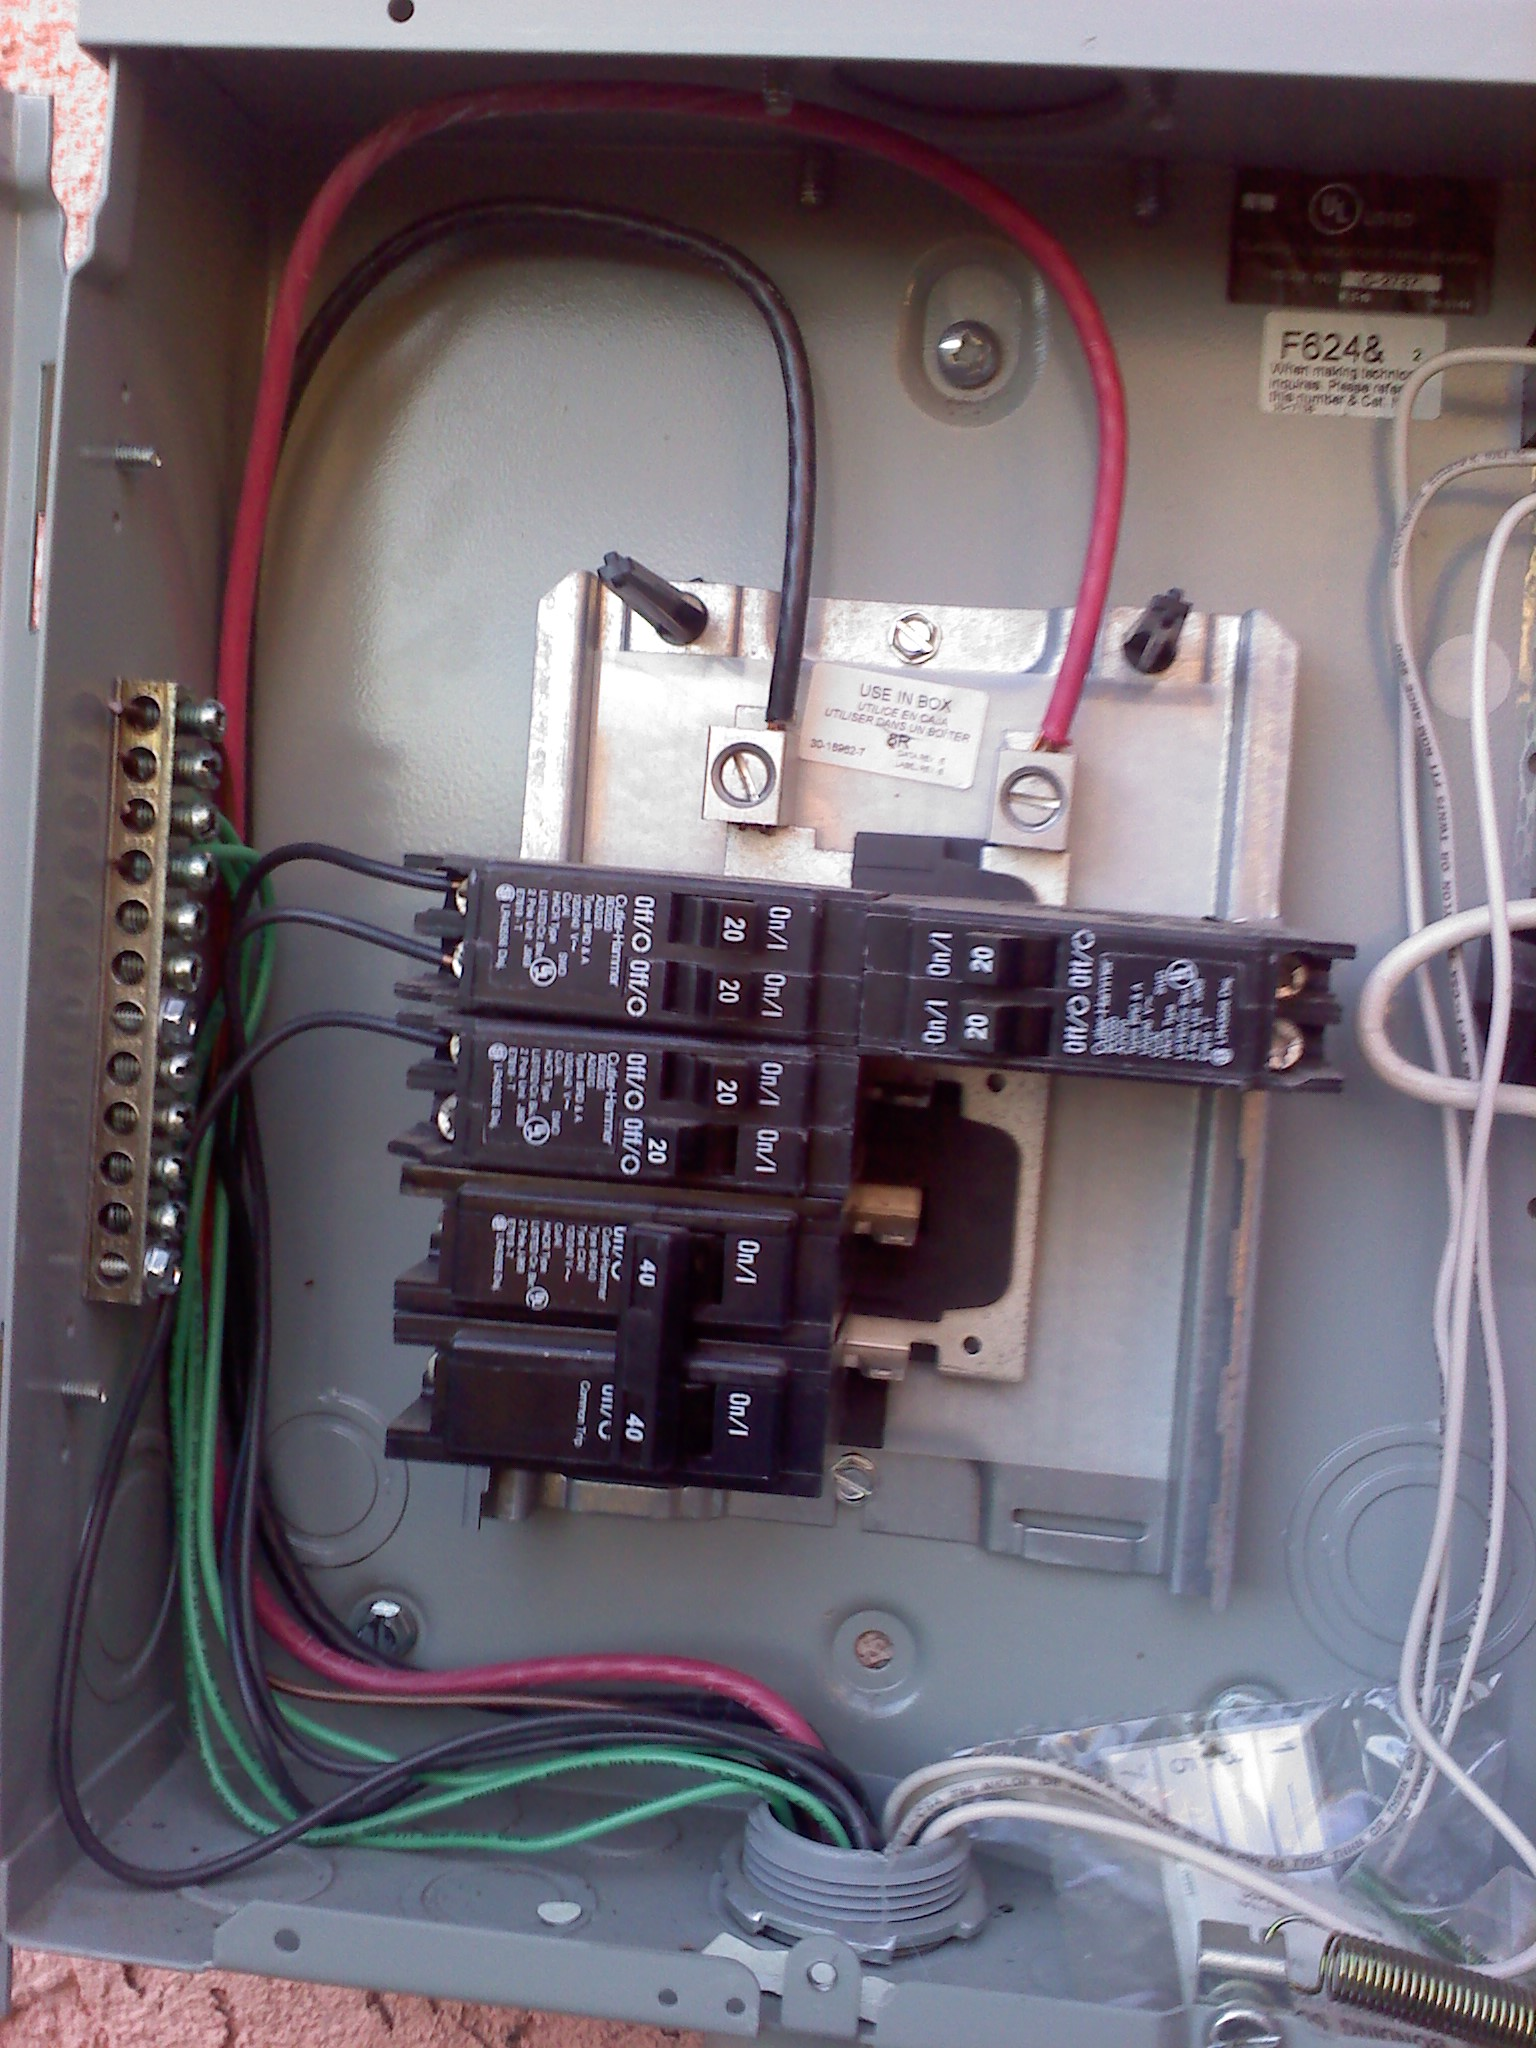 hight resolution of 100 amp wiring diagram wiring diagram show100 amp fuse box wiring wiring diagram show 100 amp